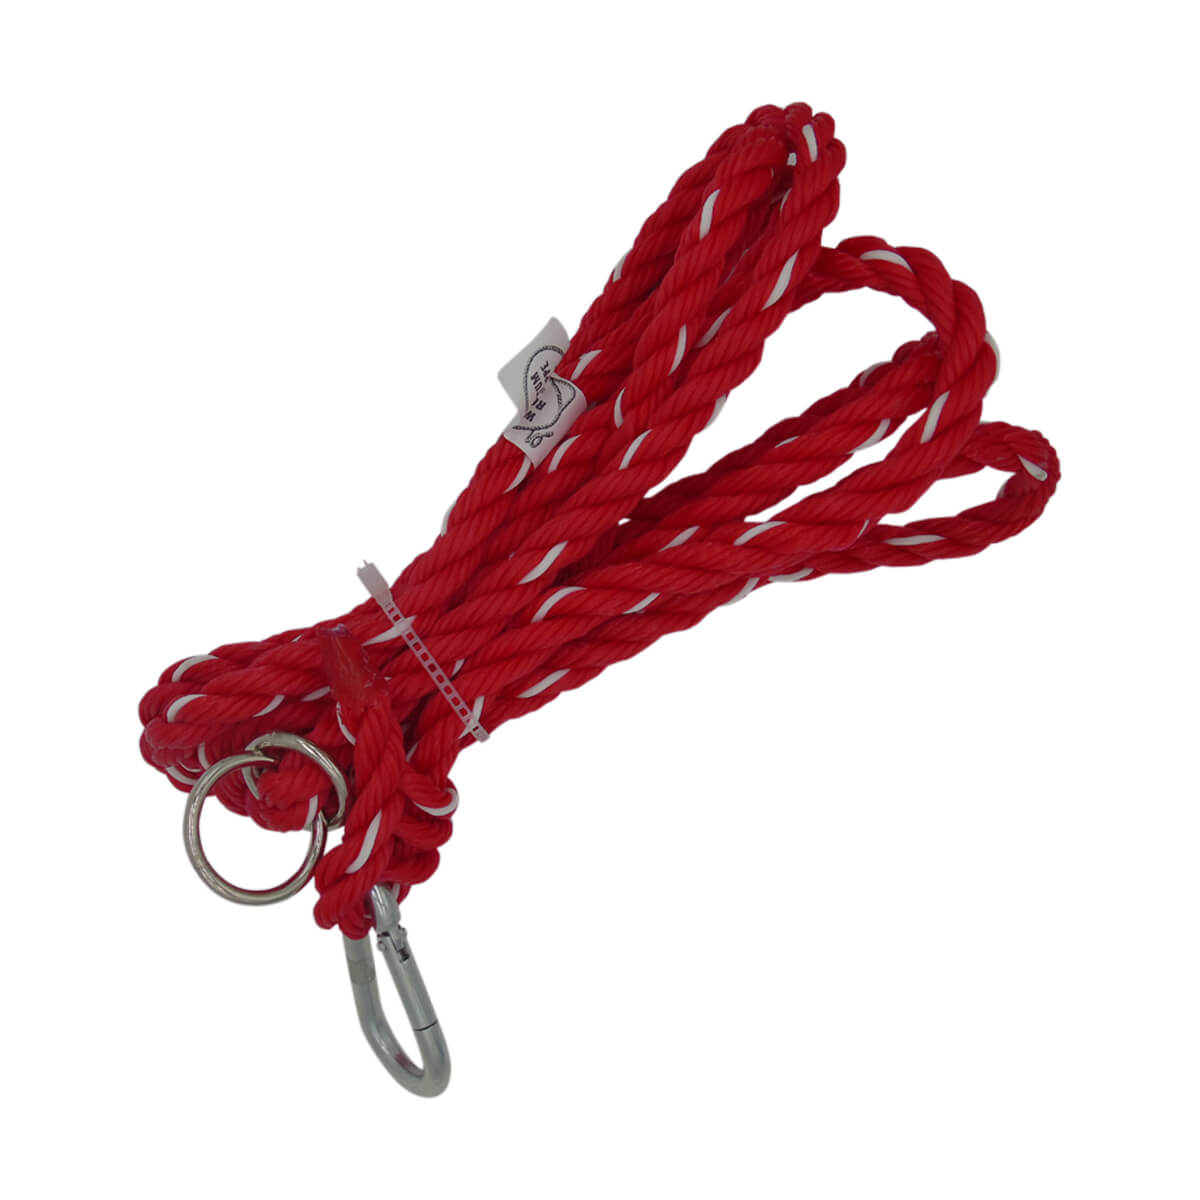 Adjustable Rope Halter Tie-Out - Red